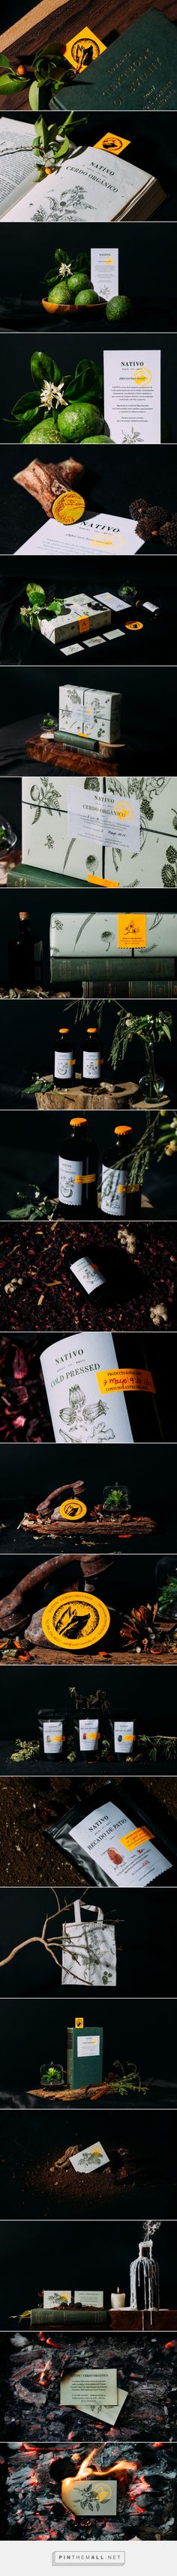 NATIVO Organic Mexican Food Branding and Packaging by Candid Brands | Fivestar Branding Agency – Design and Branding Agency & Curated Inspiration Gallery